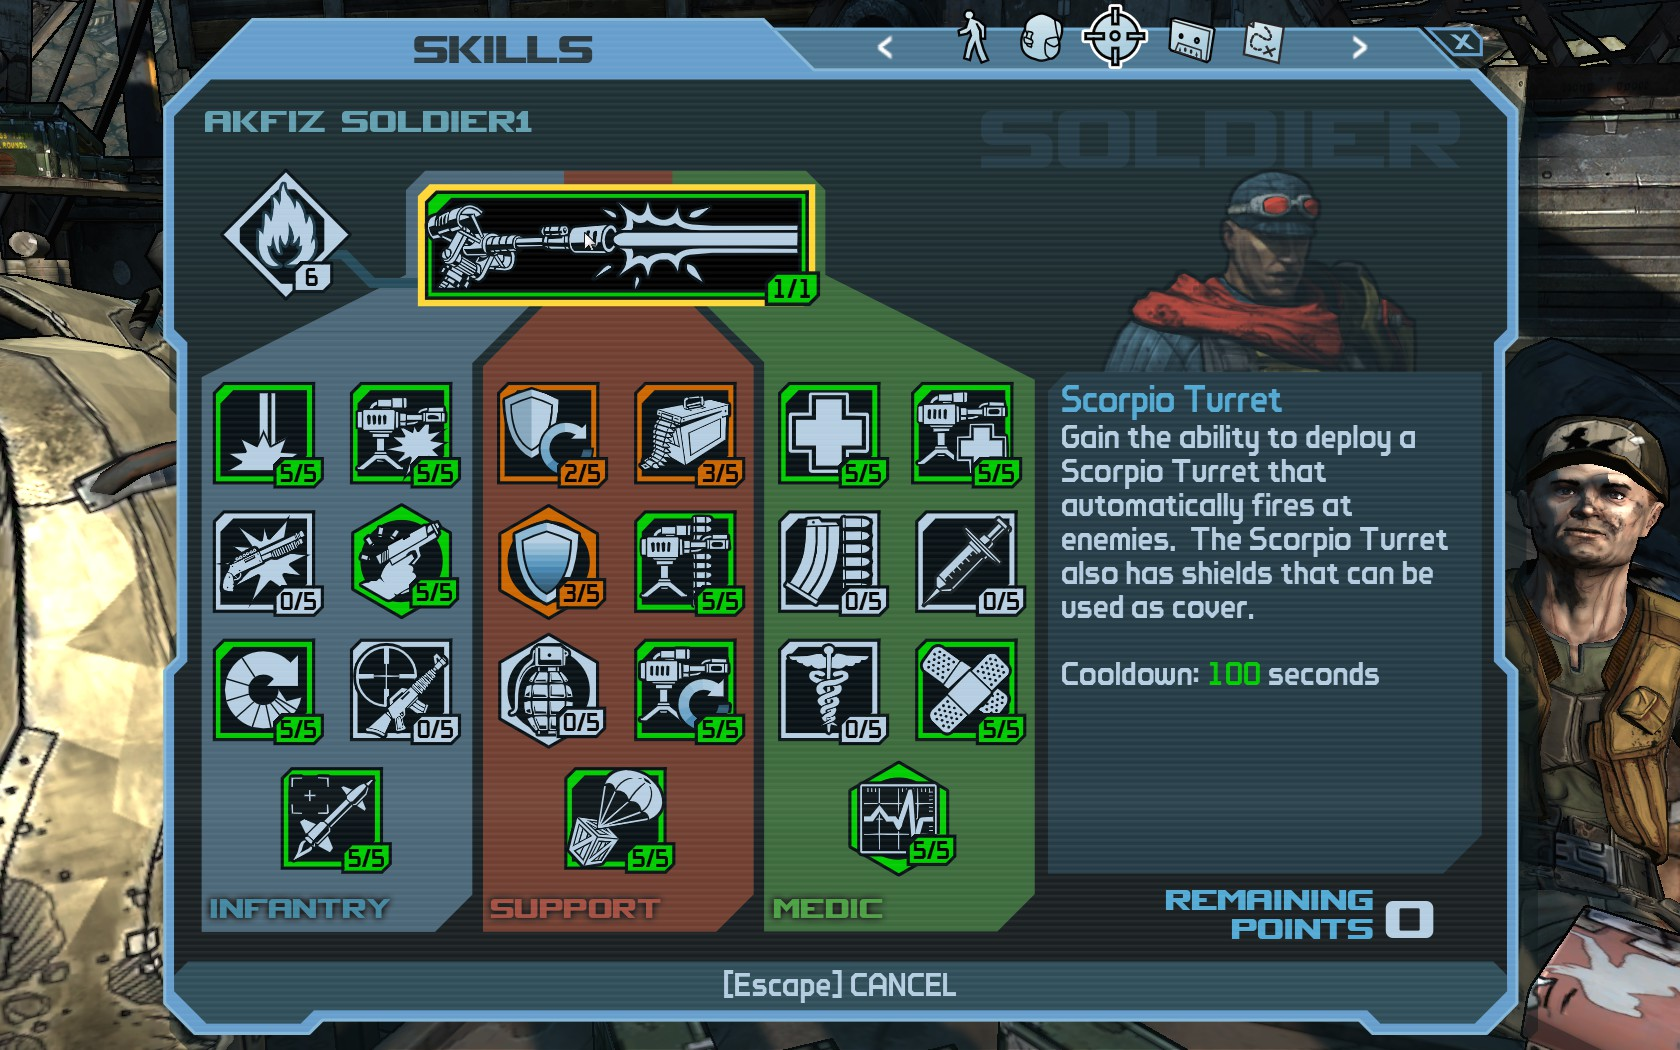 Communauté Steam Guide Borderlands Skill Tree Plan For all 4 Classes